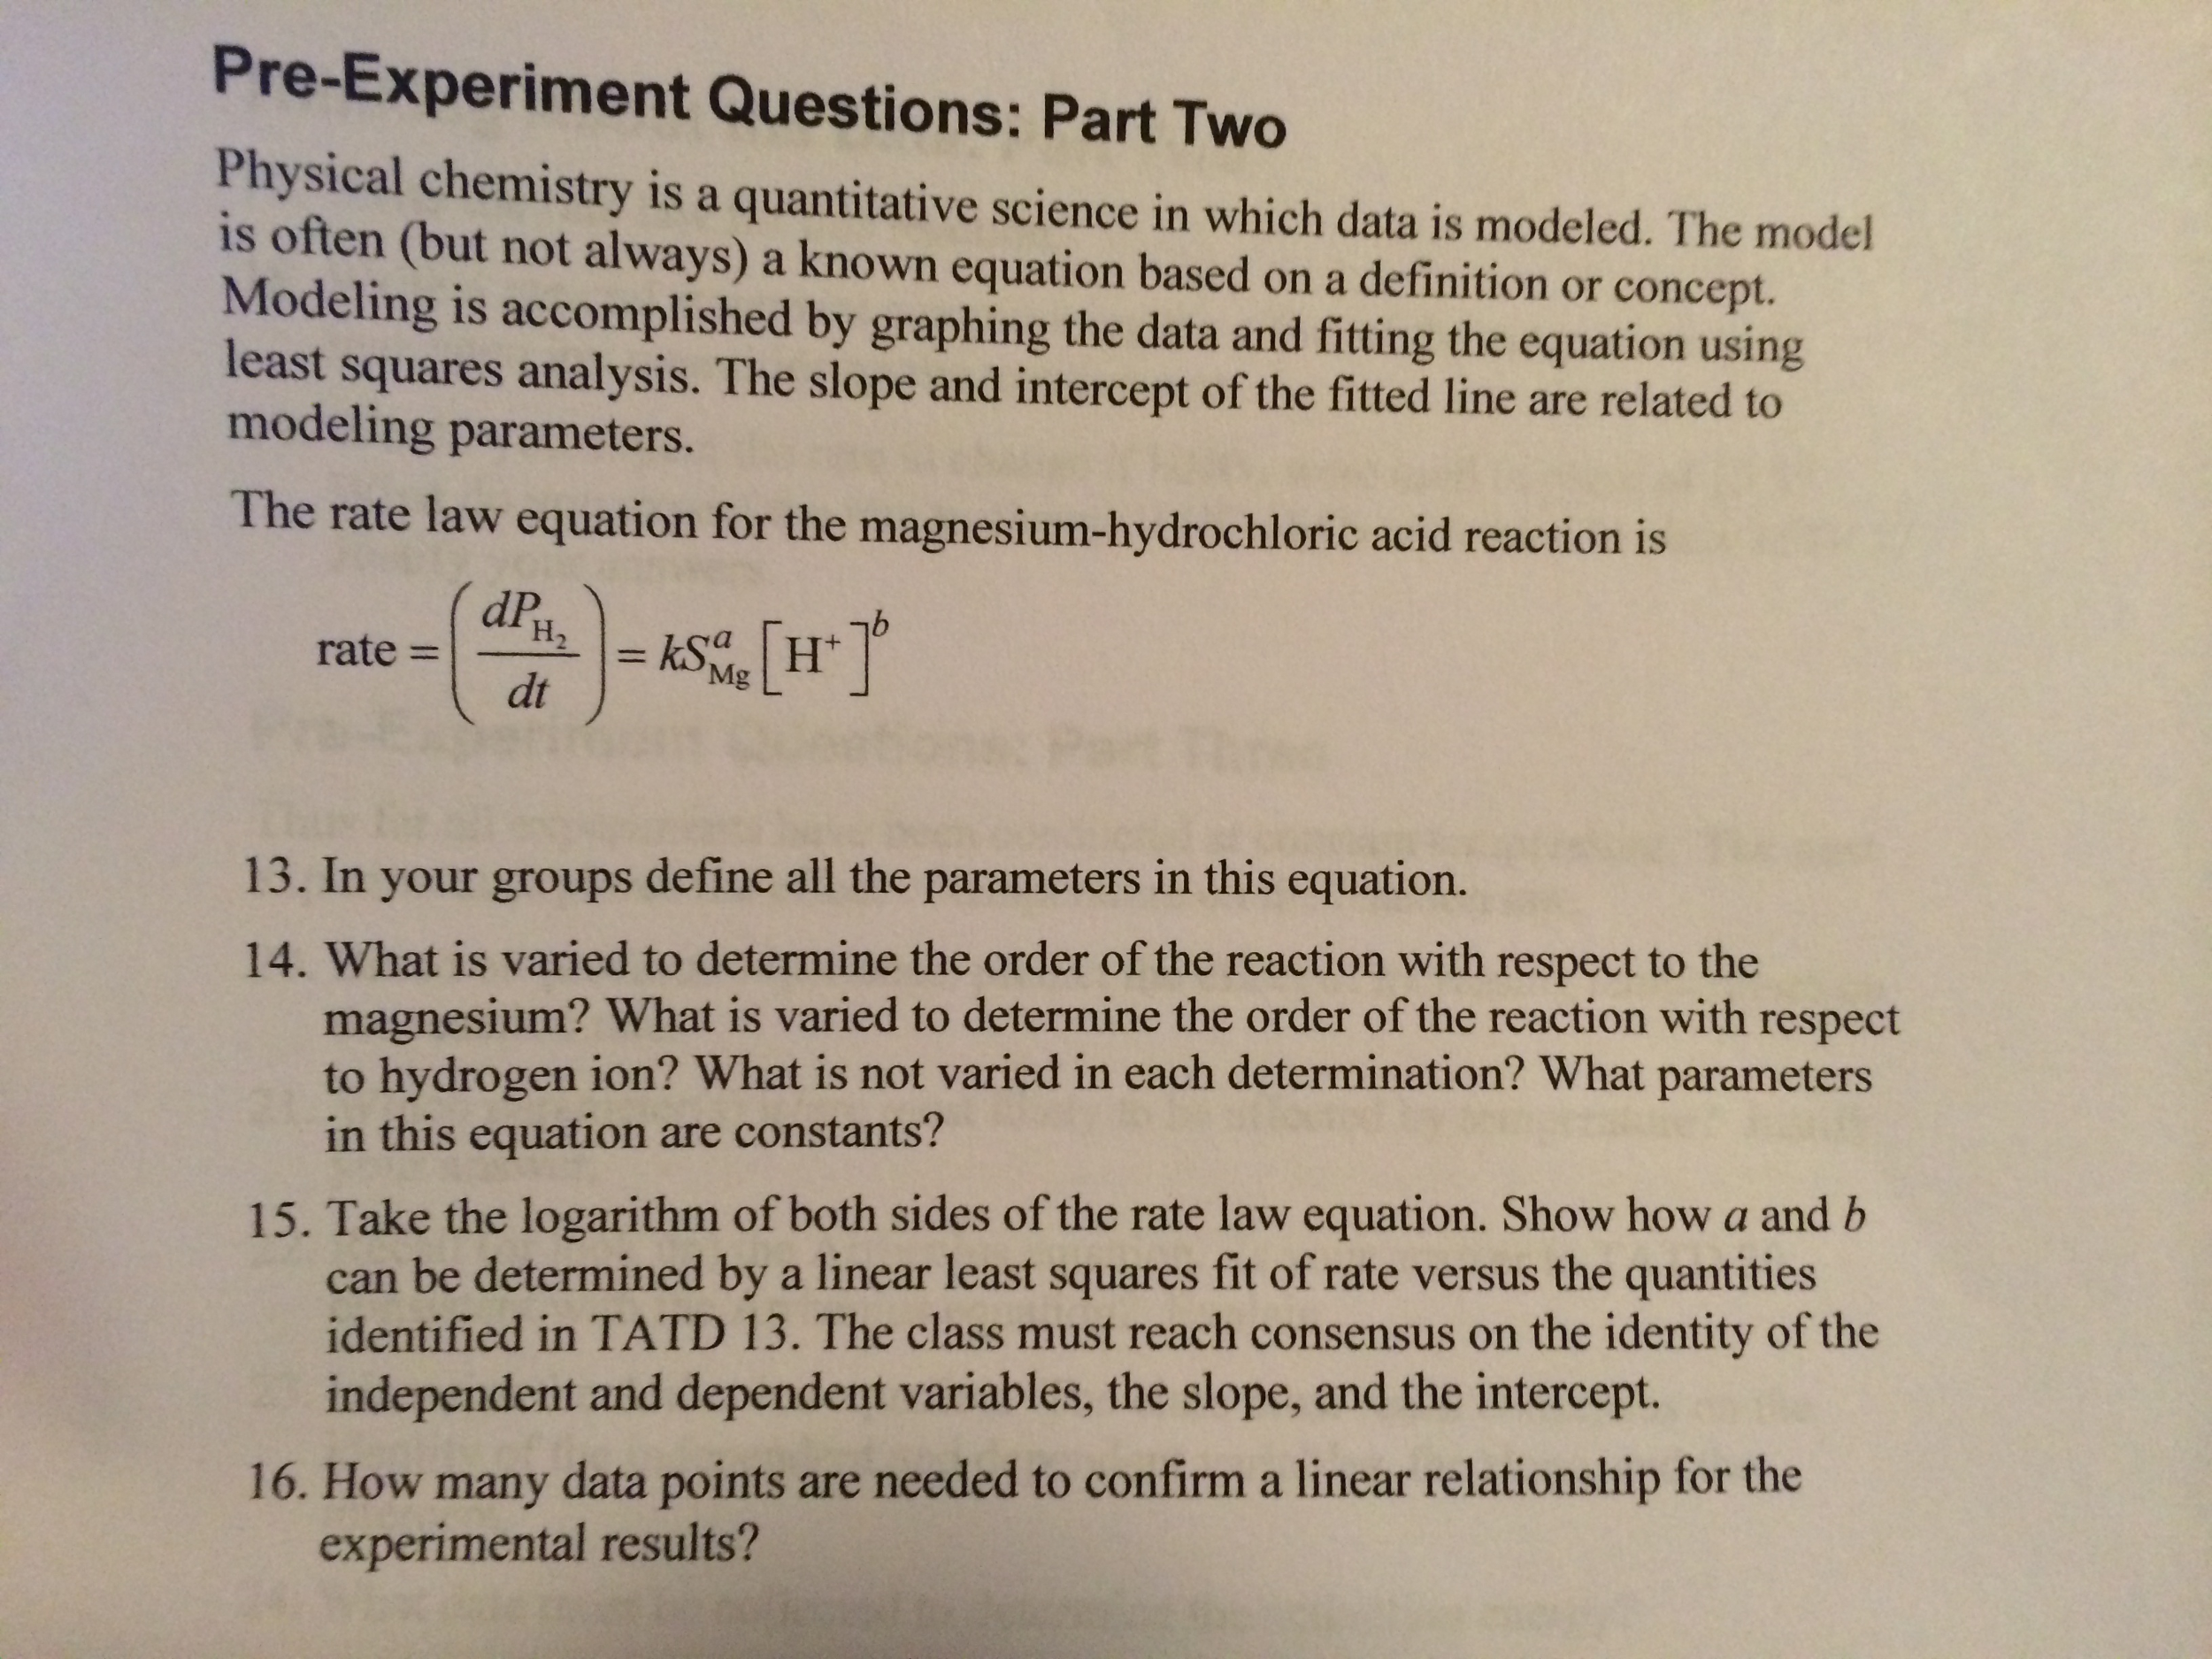 pre experiment questions part two physical chemis com question pre experiment questions part two physical chemis